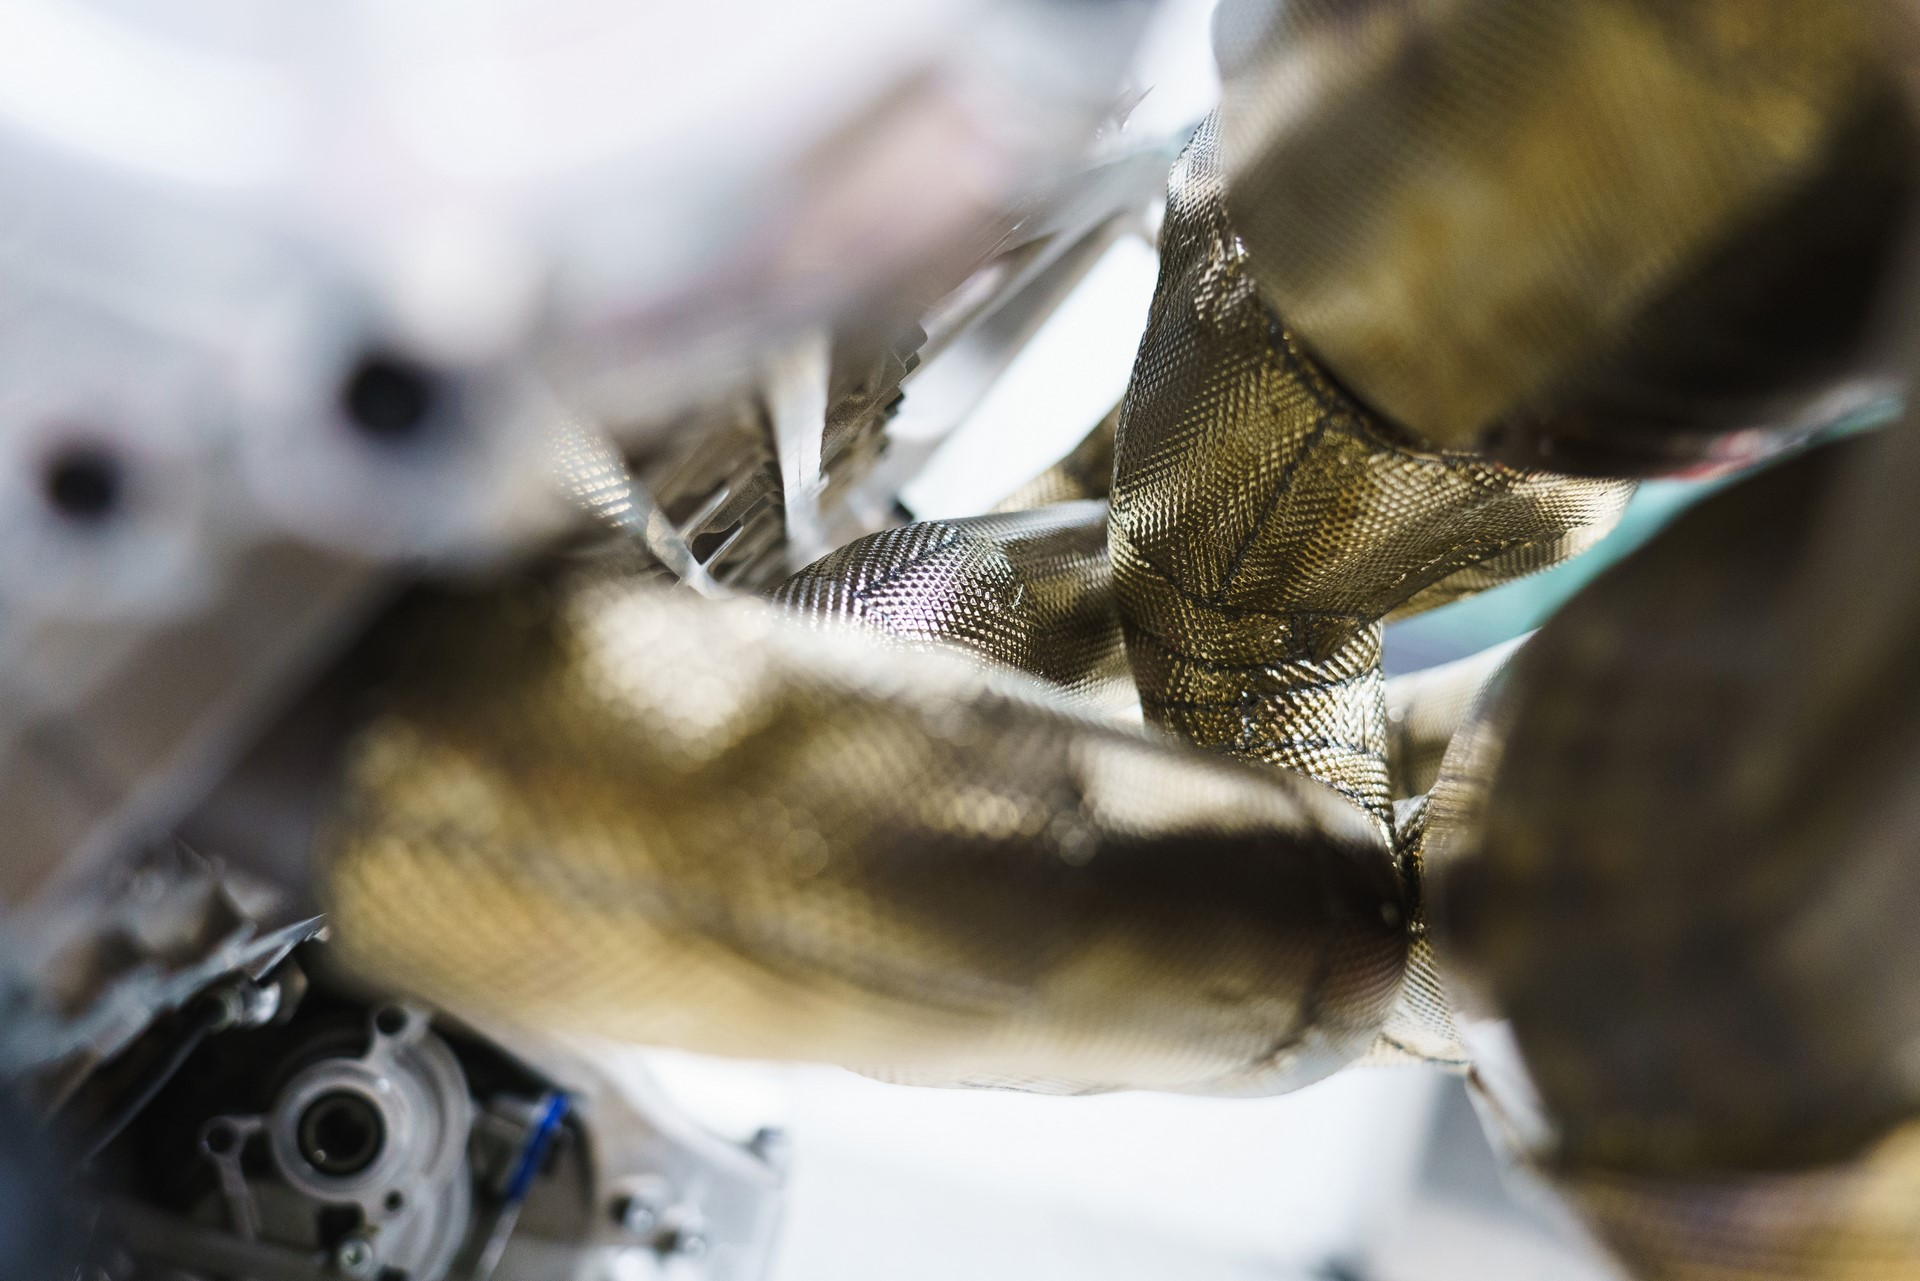 Aston Martin Valkyrie Engine (14)